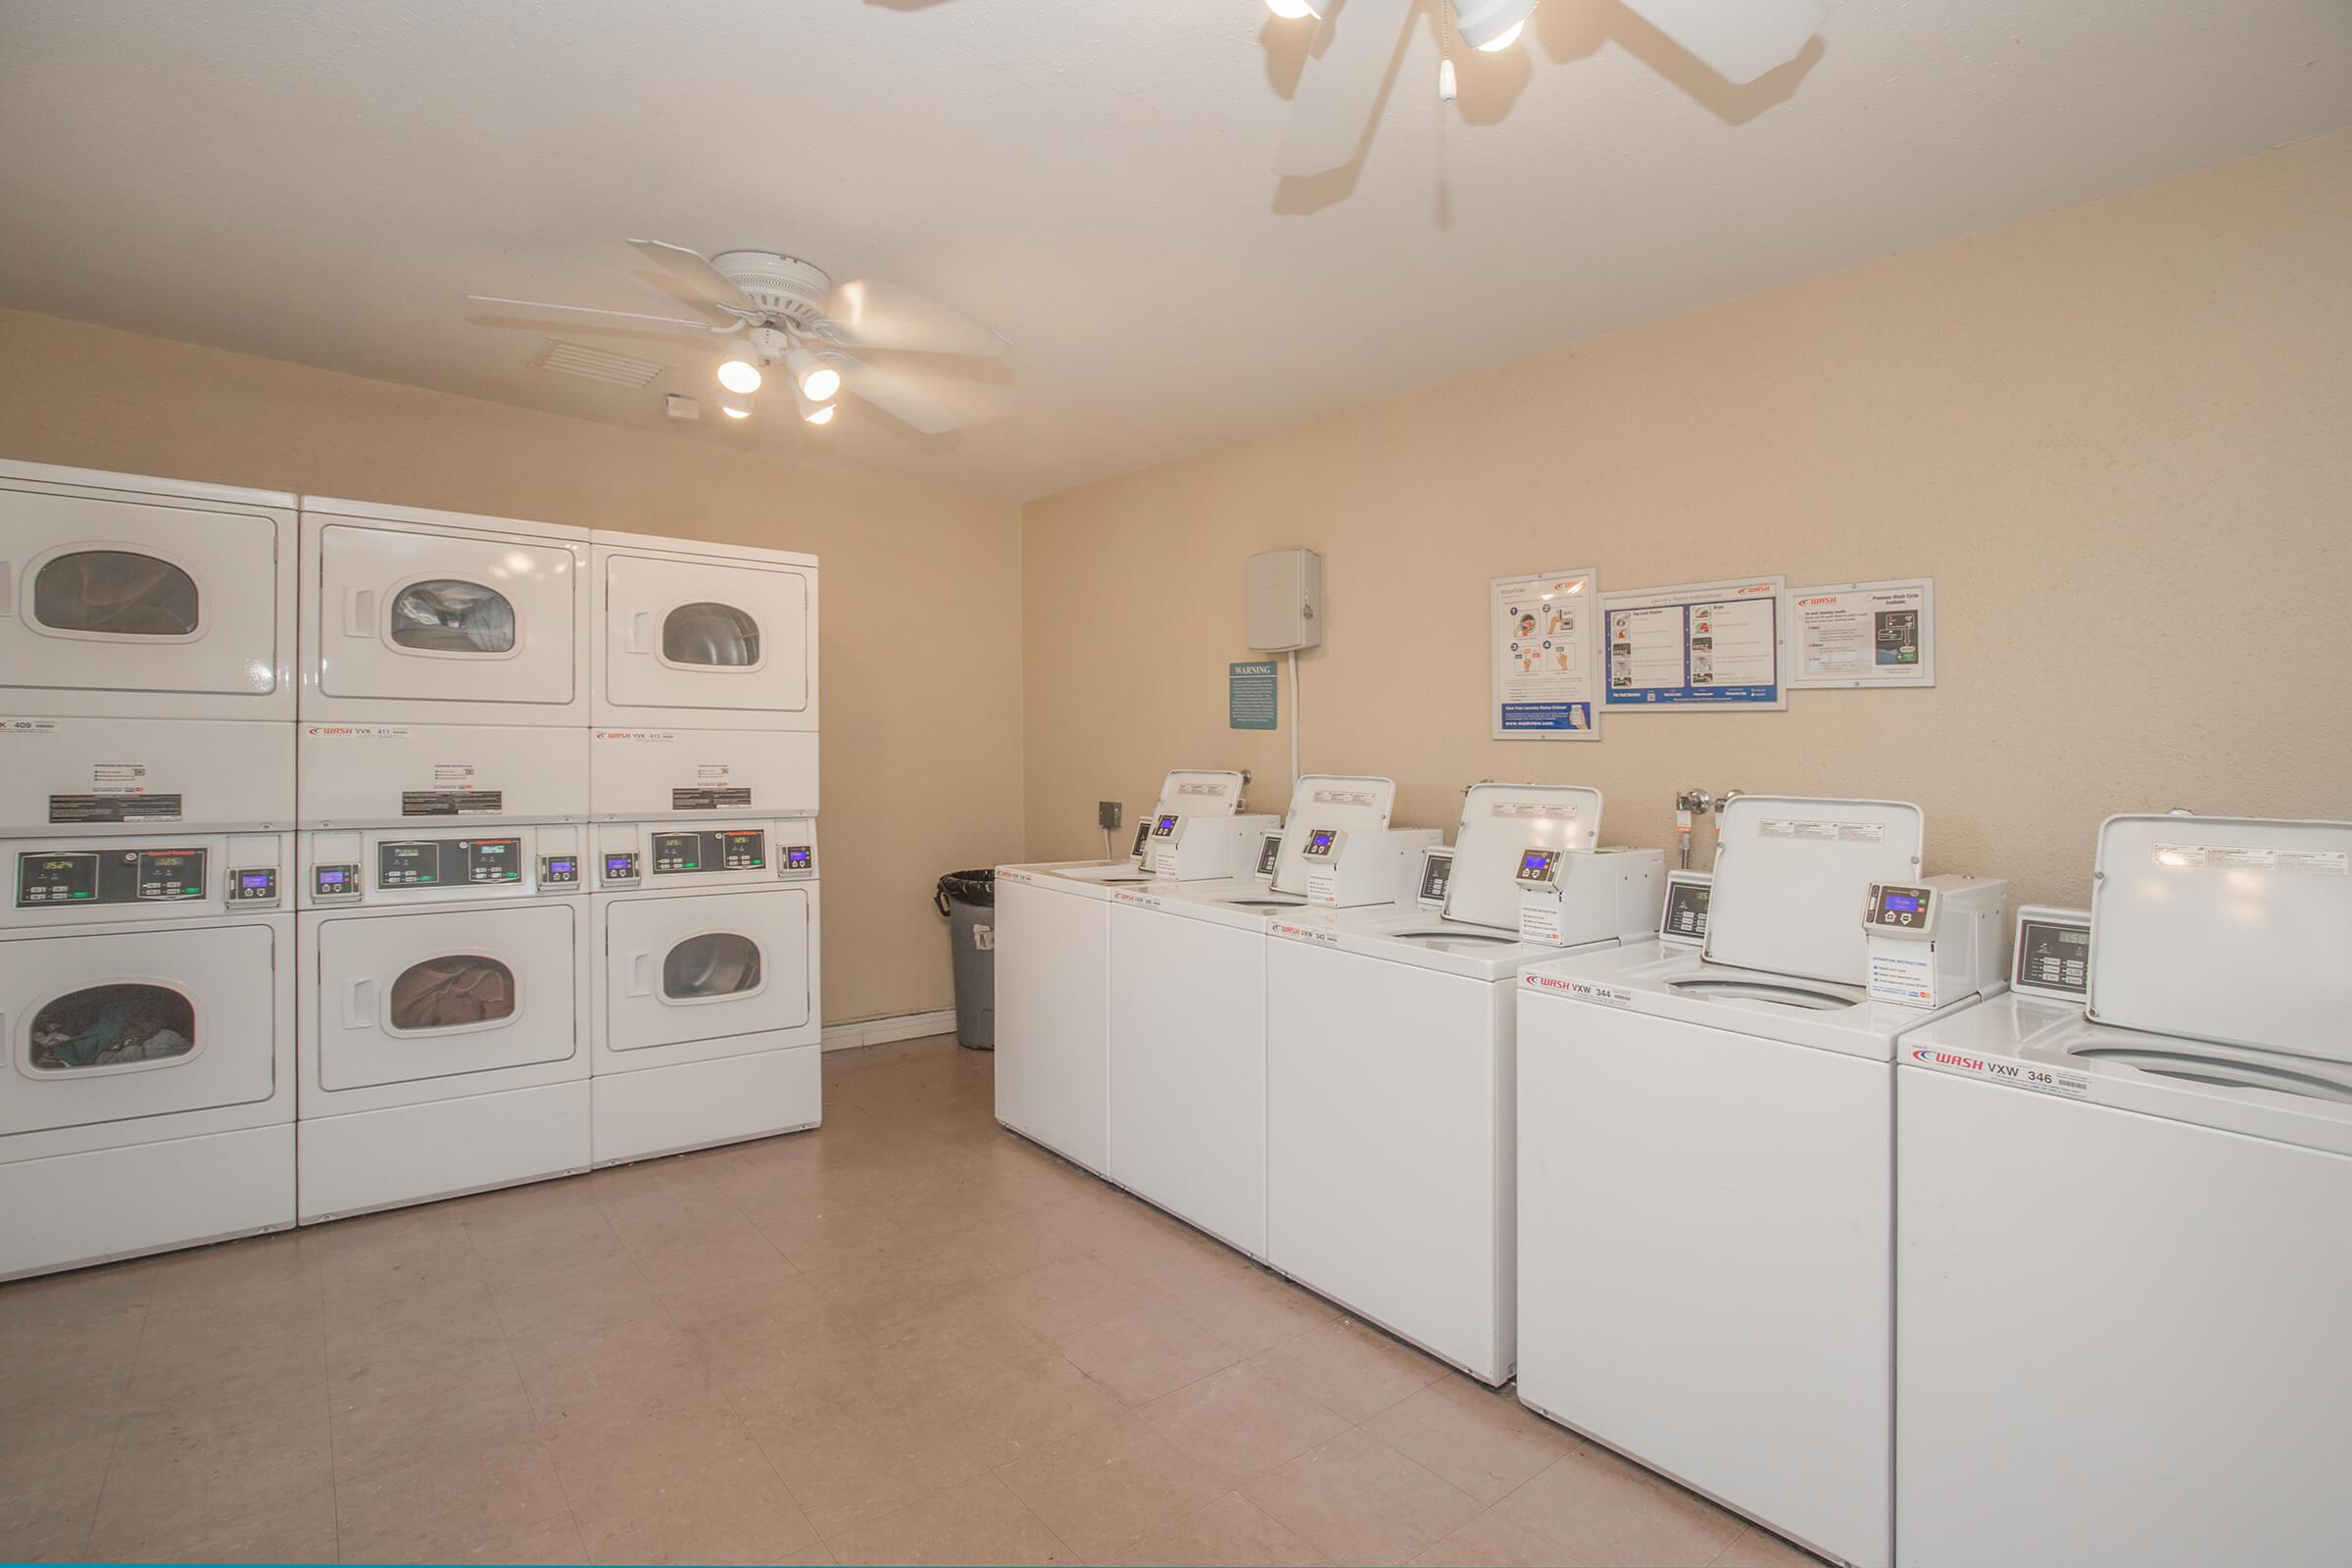 Washers and dryers in the laundry room